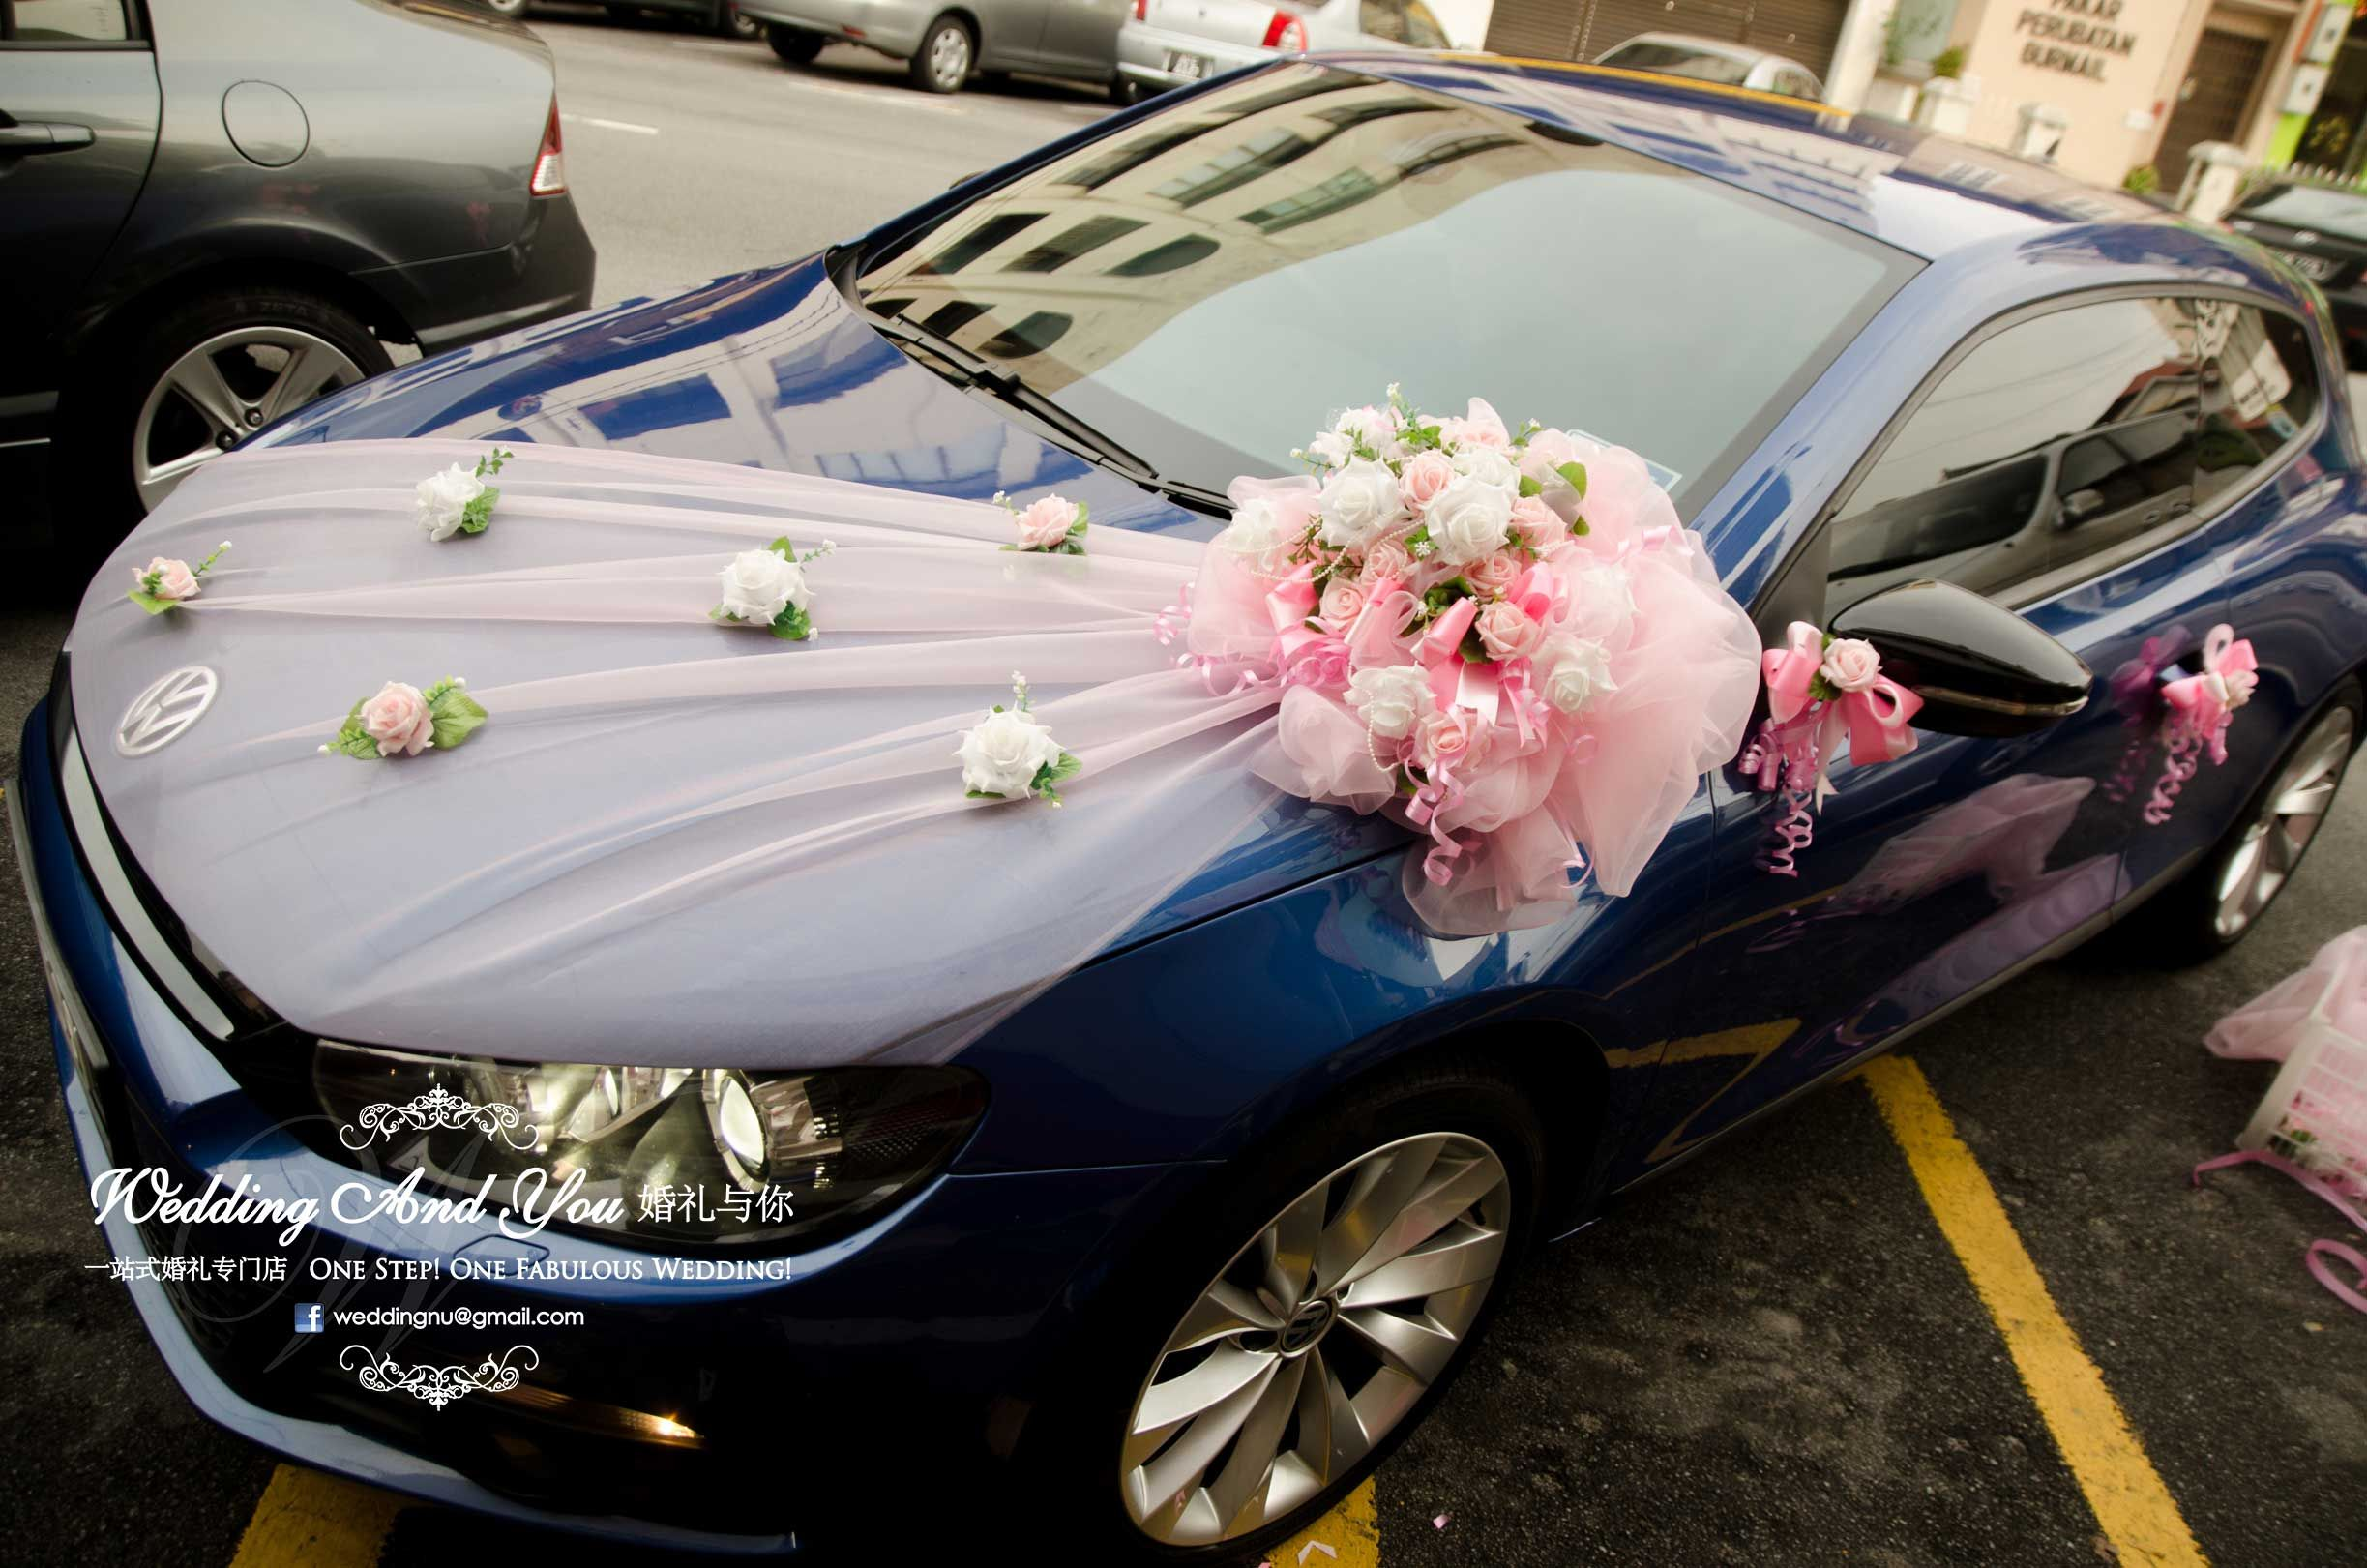 Wedding Car Decoration - Google zoeken | mahera in 2018 | Pinterest ...